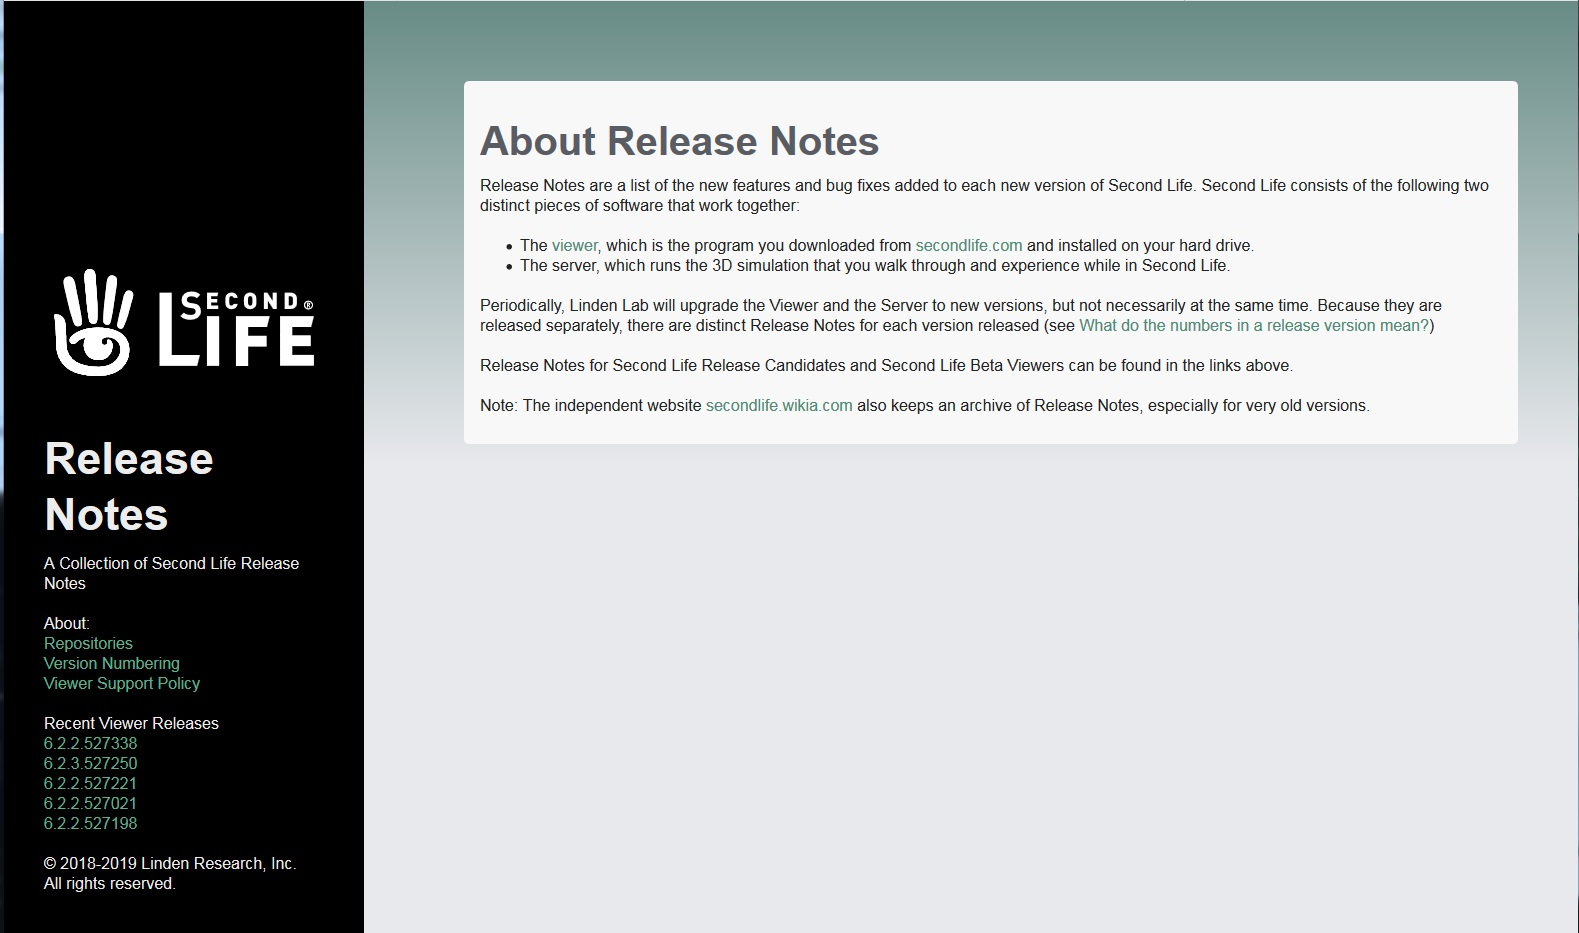 Second Life Newser: New Second Life Viewer Release Notes Website